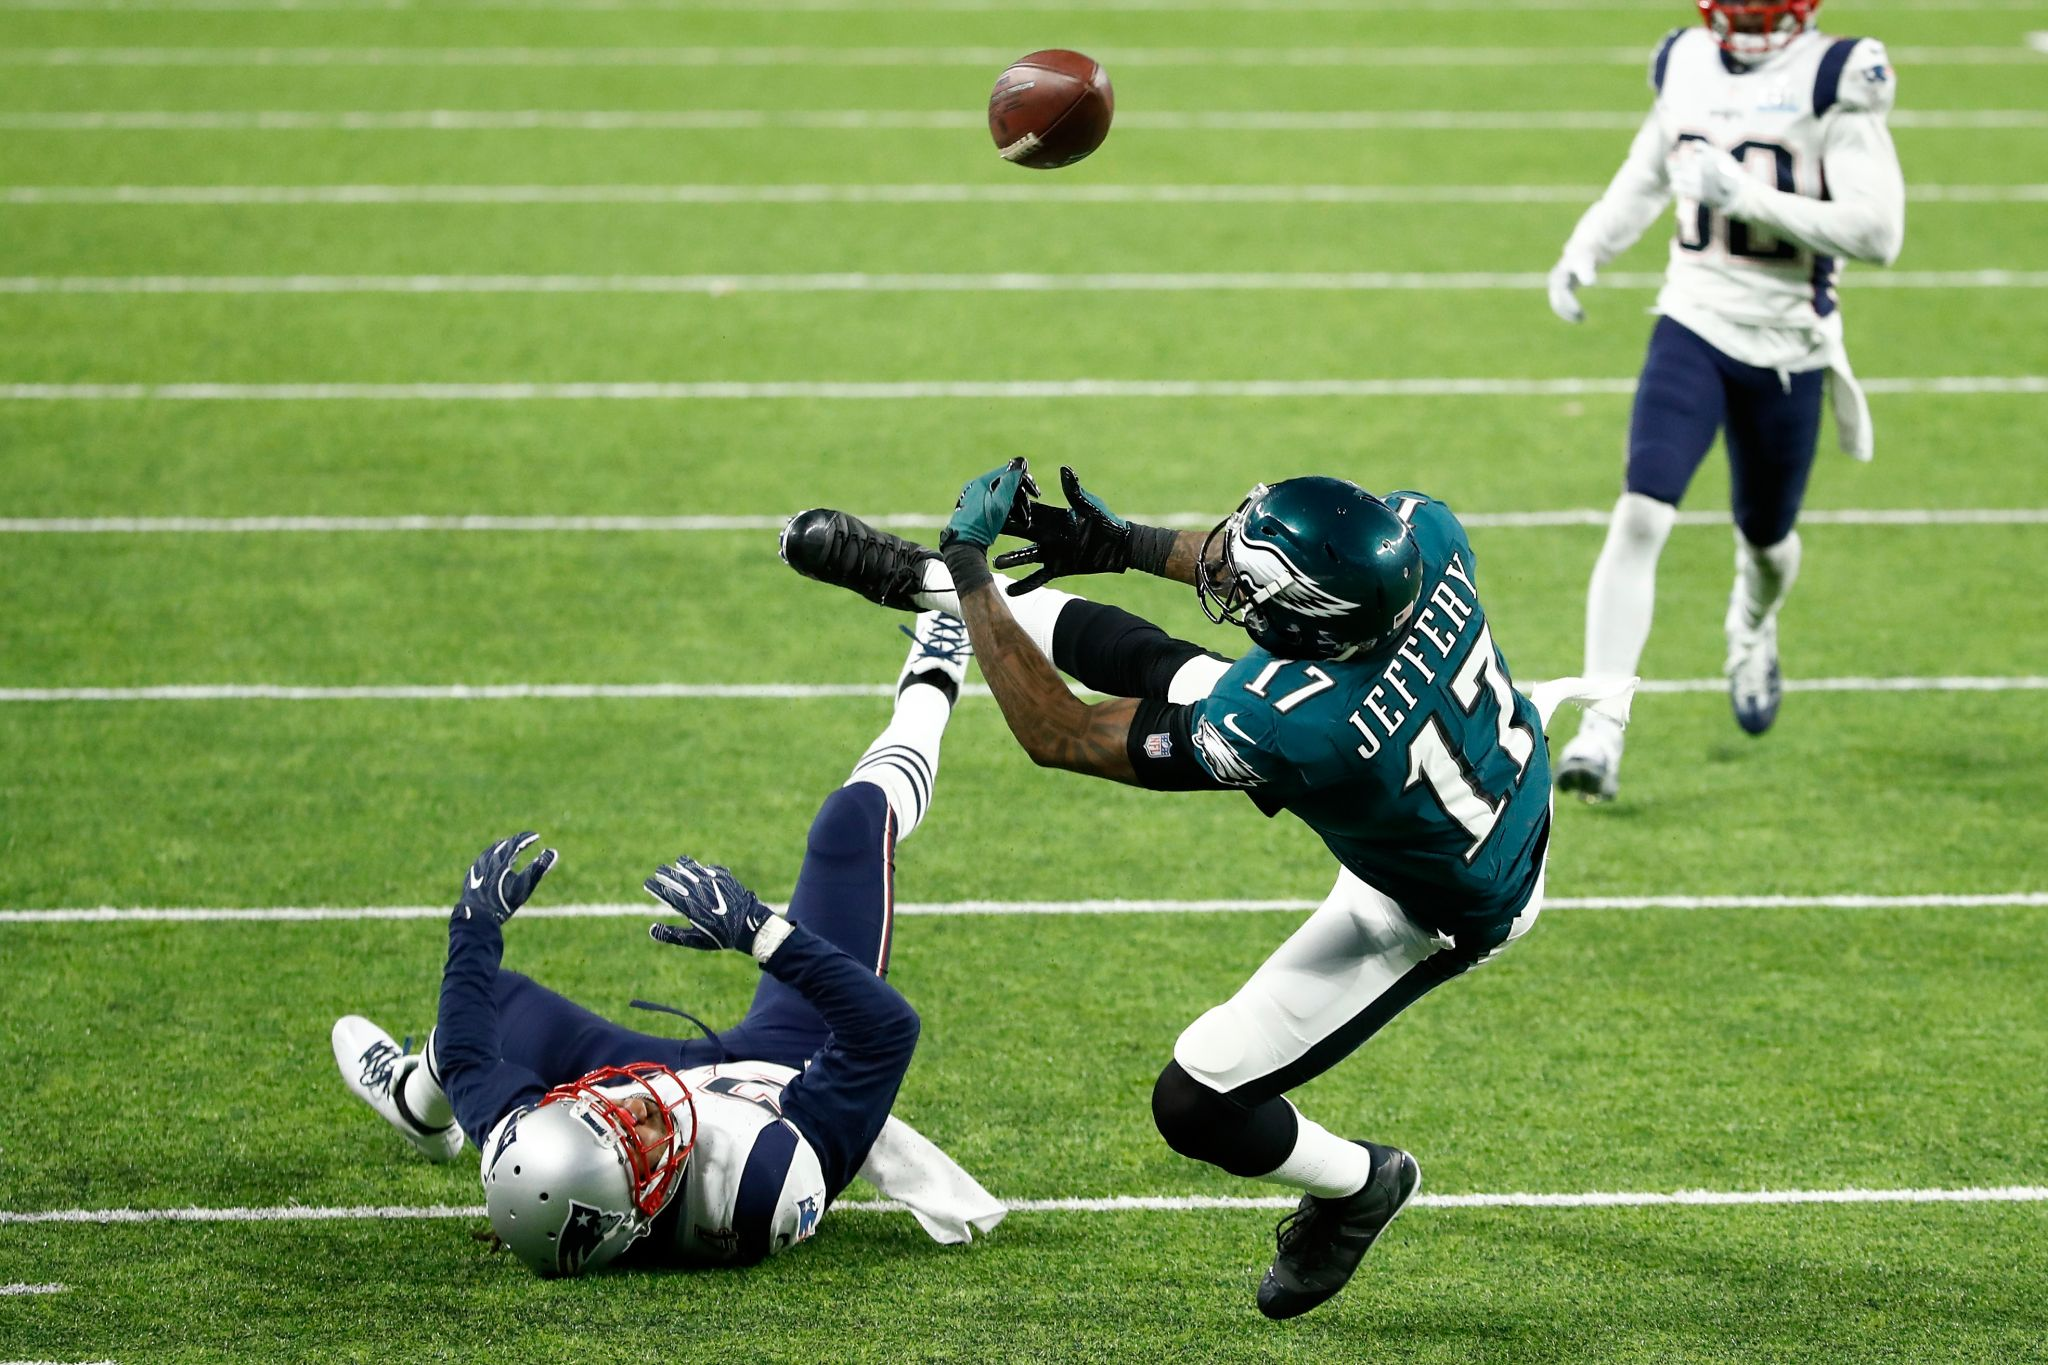 Super Bowl LII Snapshots from the Game seattlepi